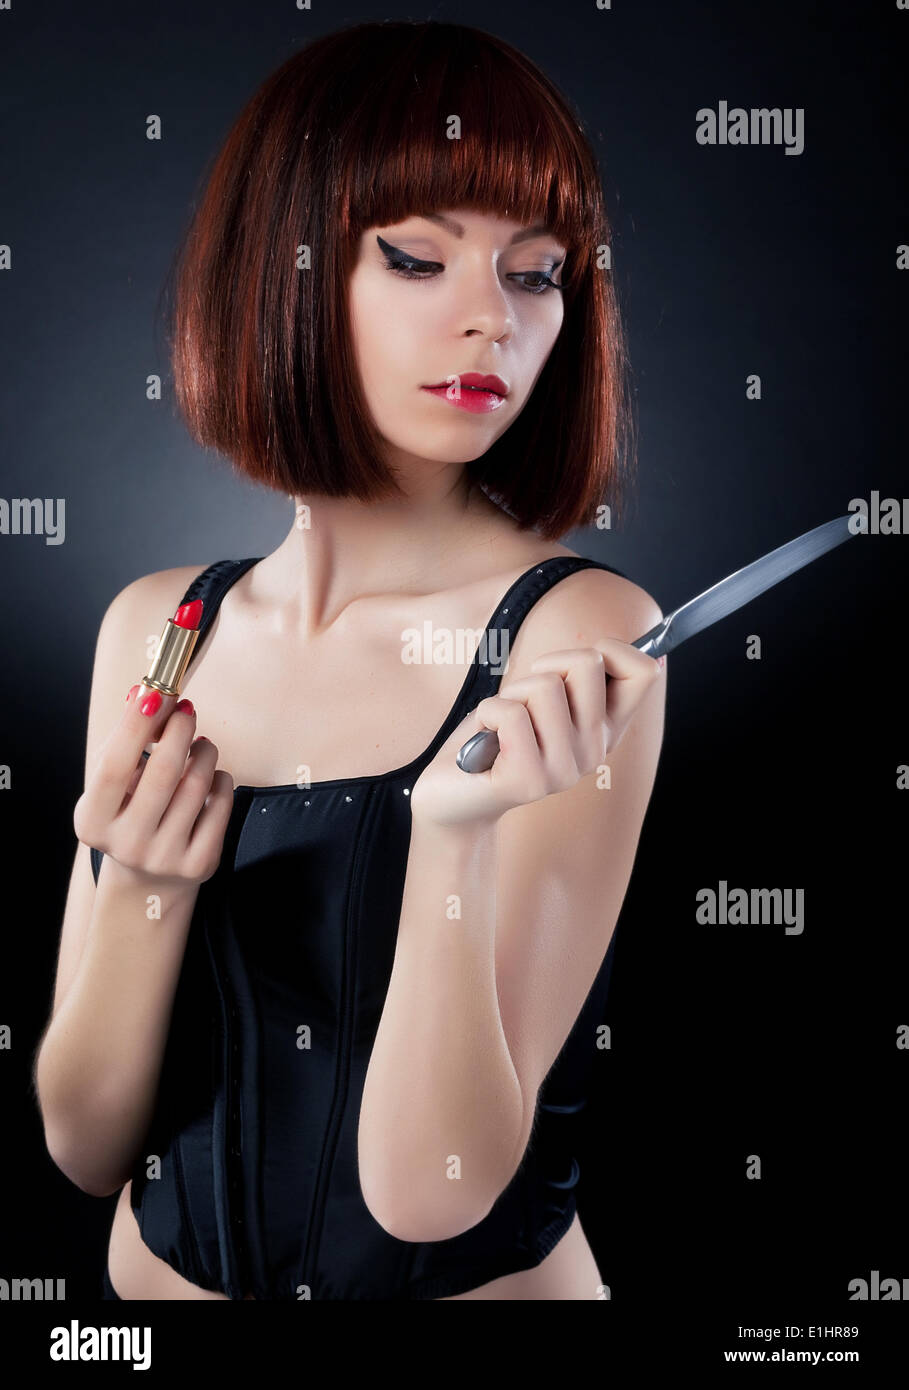 Beautiful girl in red hair wig putting on make up - reflects on table knife Stock Photo